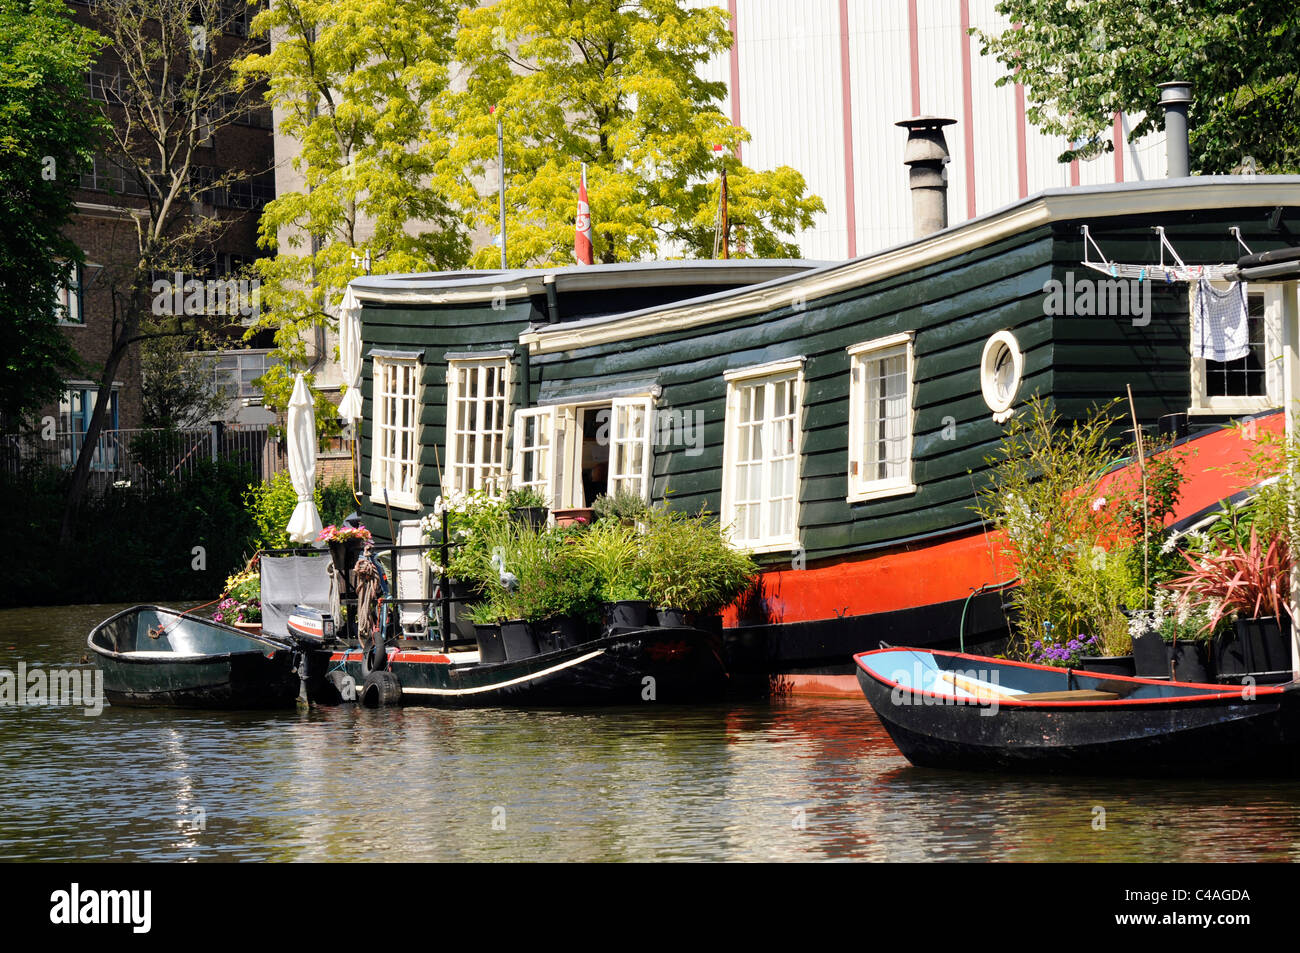 House boat on canal in Leiden, Holland - Stock Image